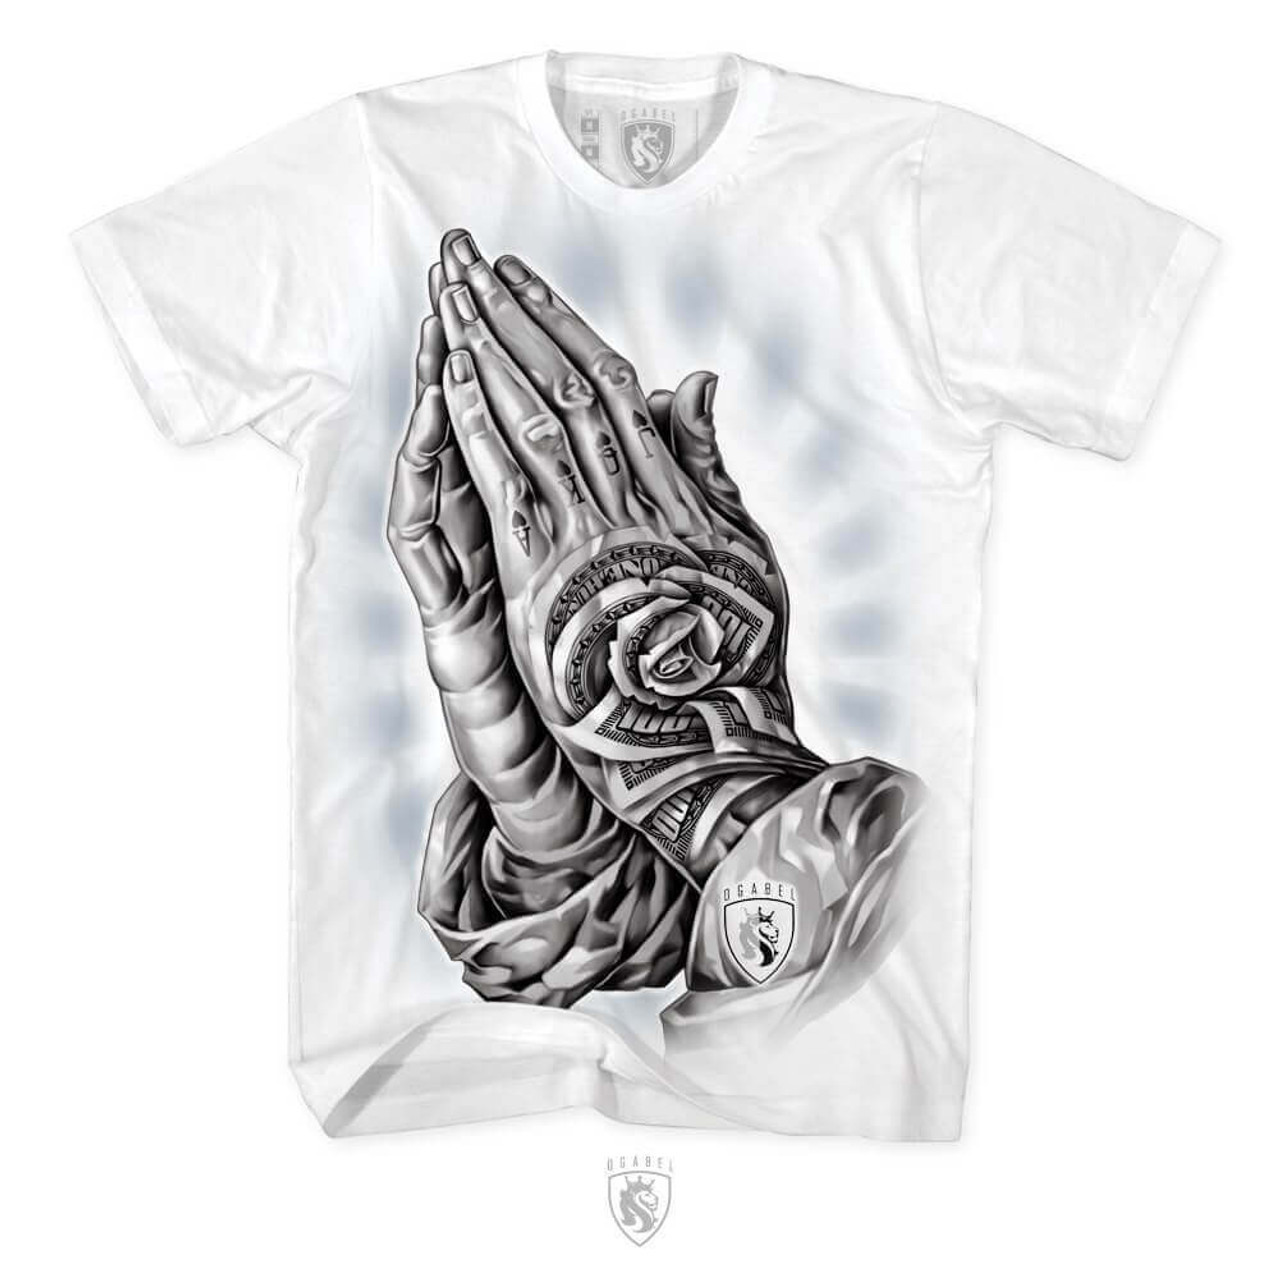 23db96d260 OG Abel Money Rose Flowers Hands Praying Tattooed Urban Men's Tee Shirt  A0396